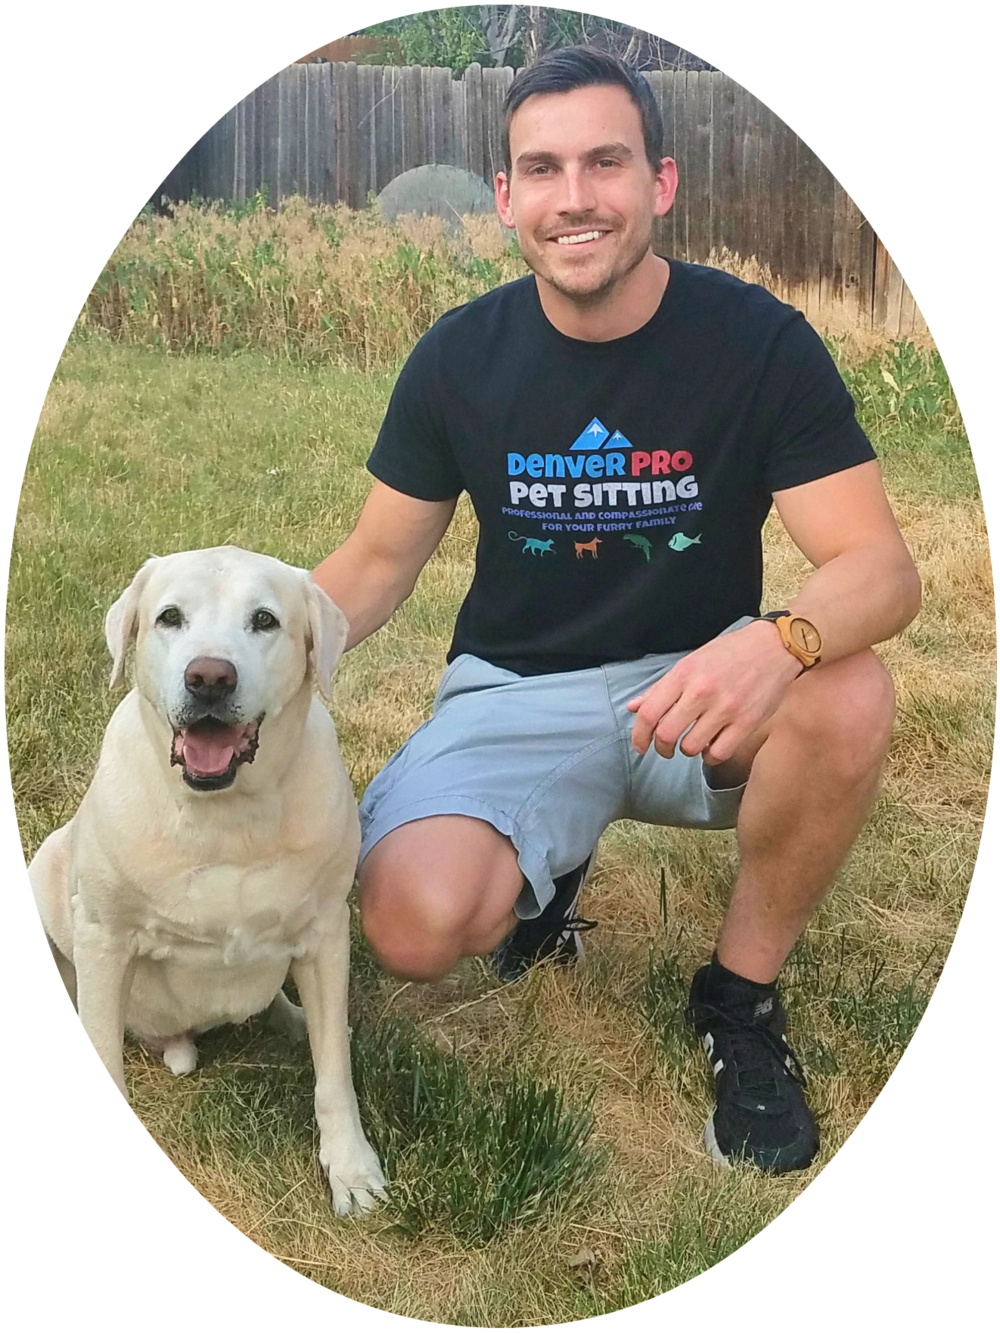 Denver-Pro-Pet-Sitting-Owner